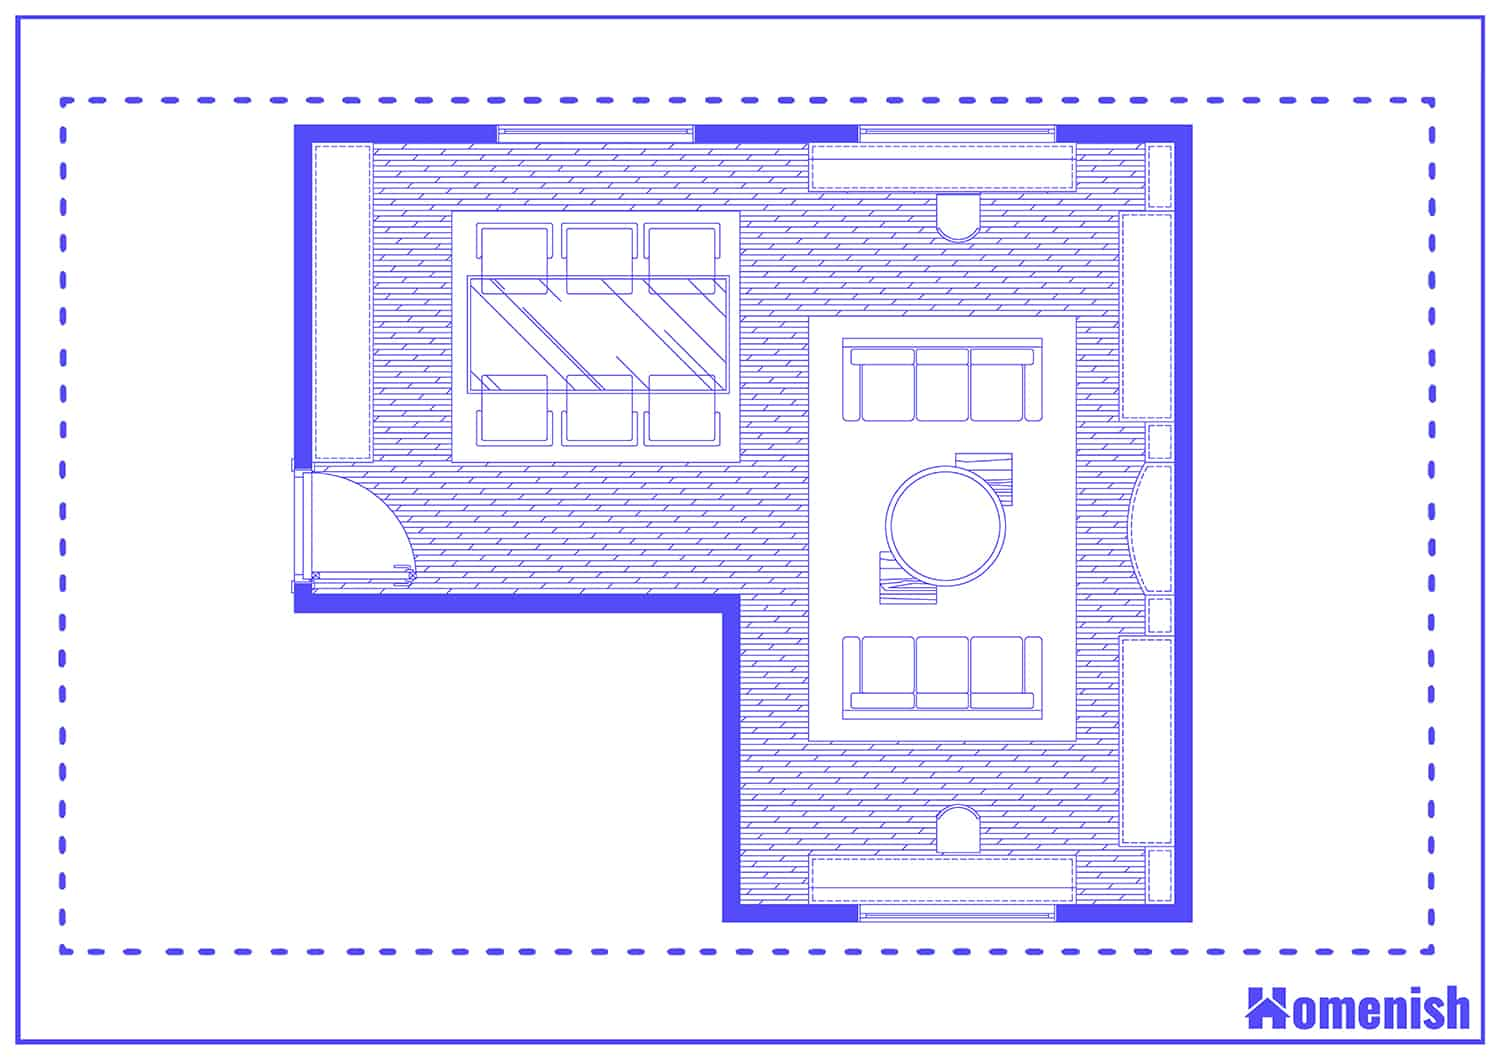 Lounge Diner Layout